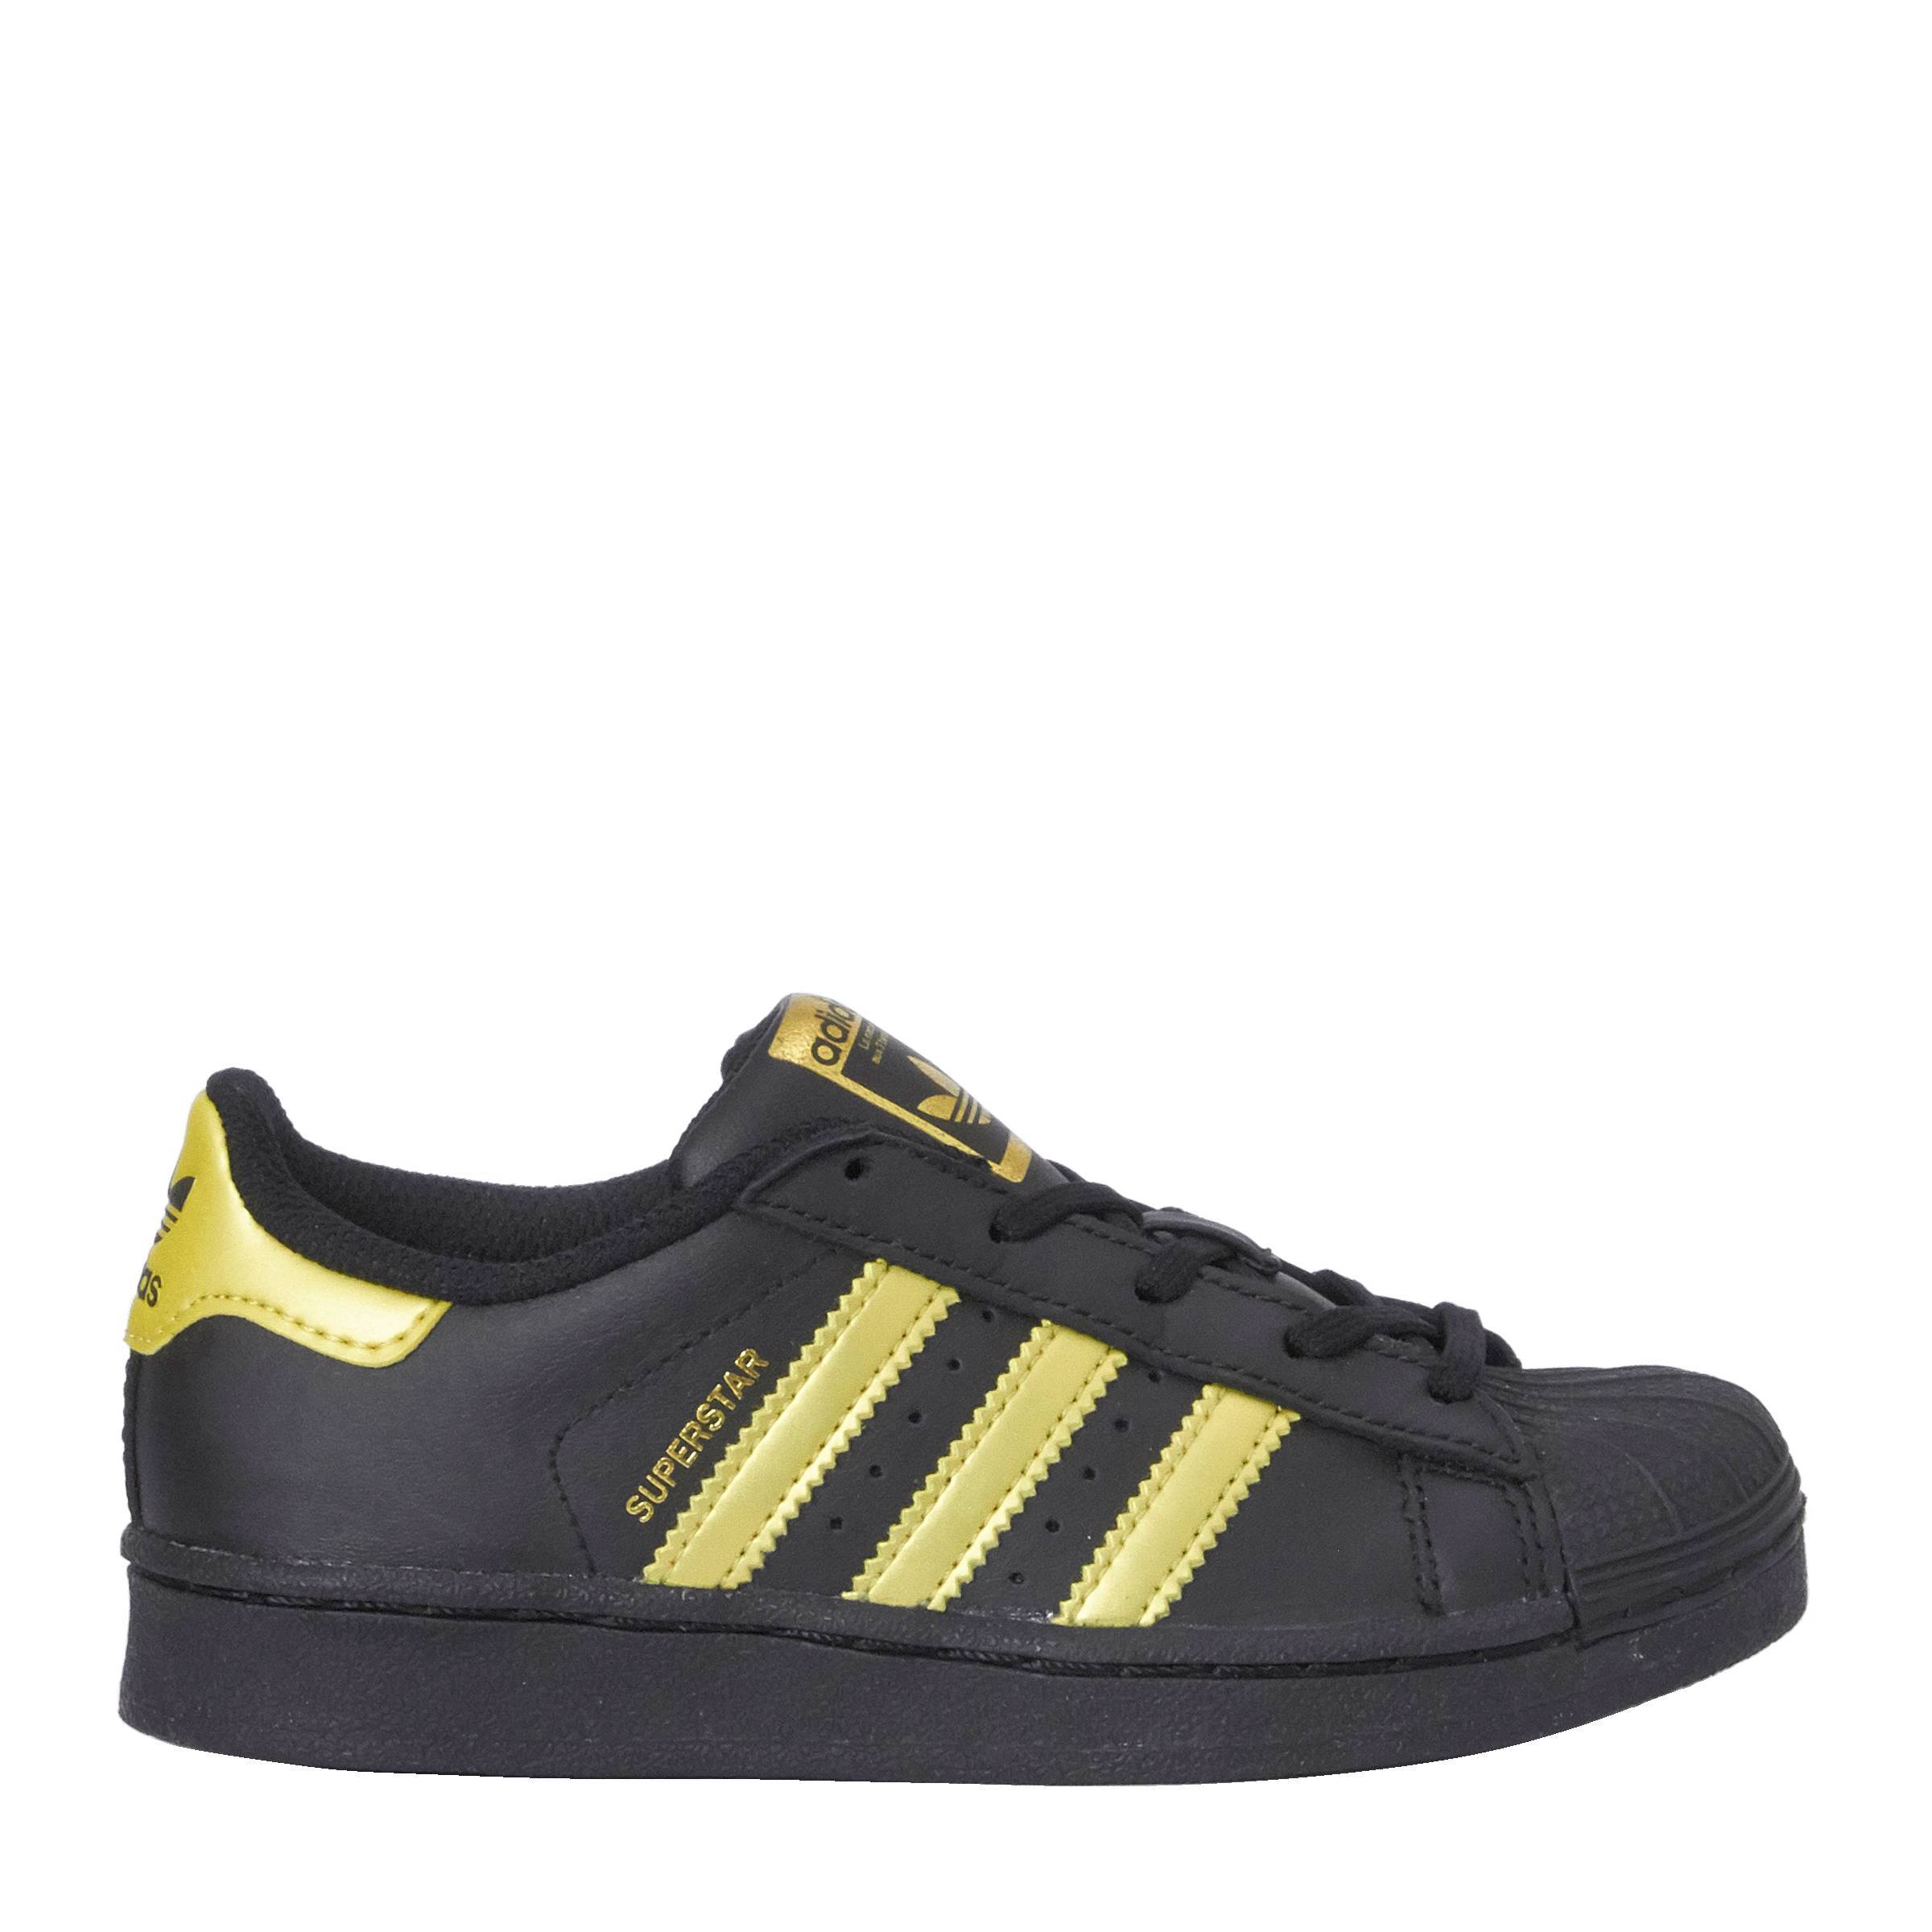 875bf8fde0c adidas originals Superstar C sneakers | wehkamp